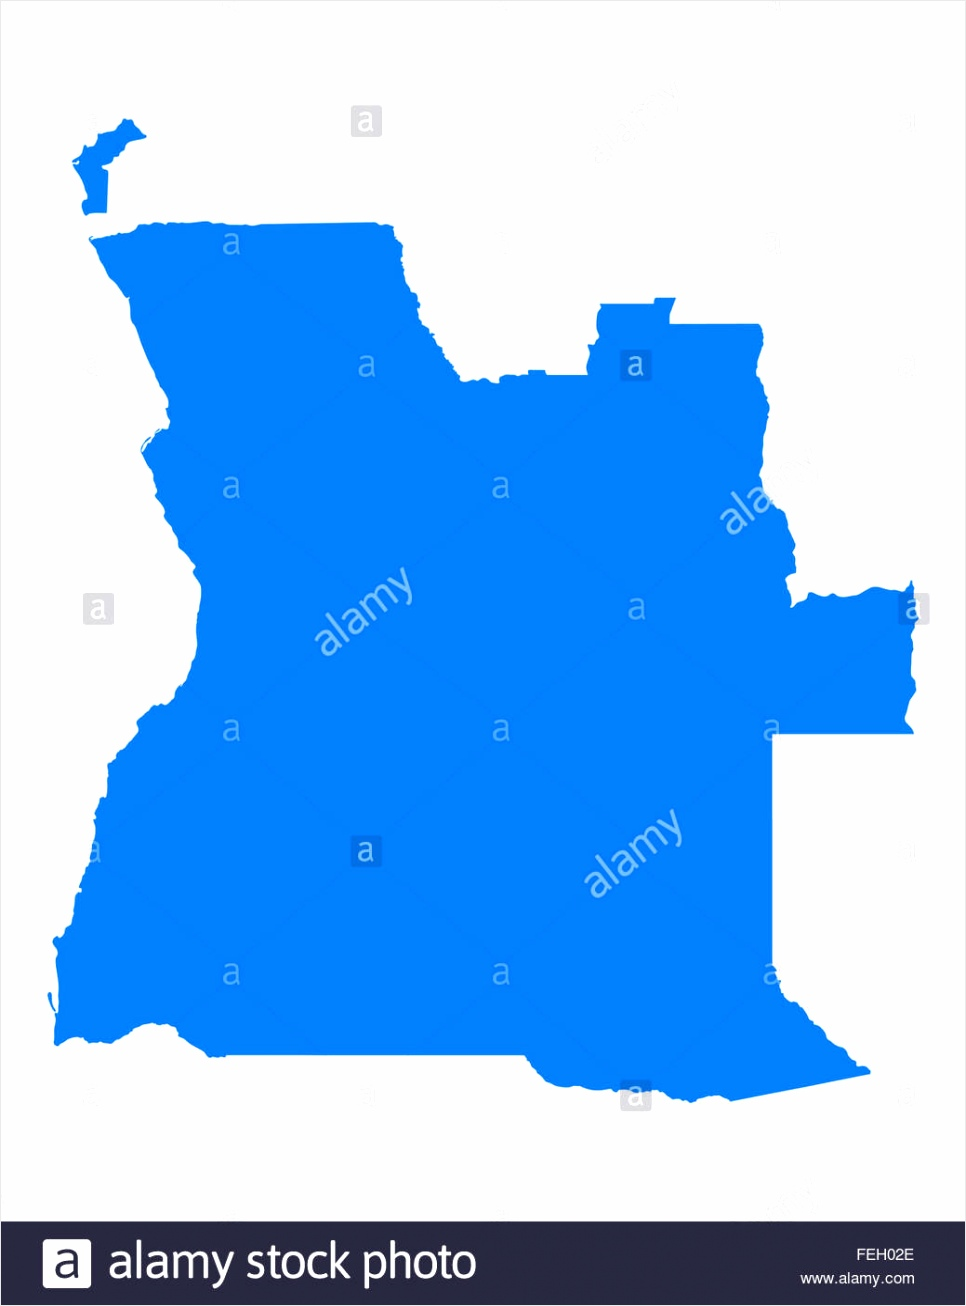 map of angola page=2 auiwb